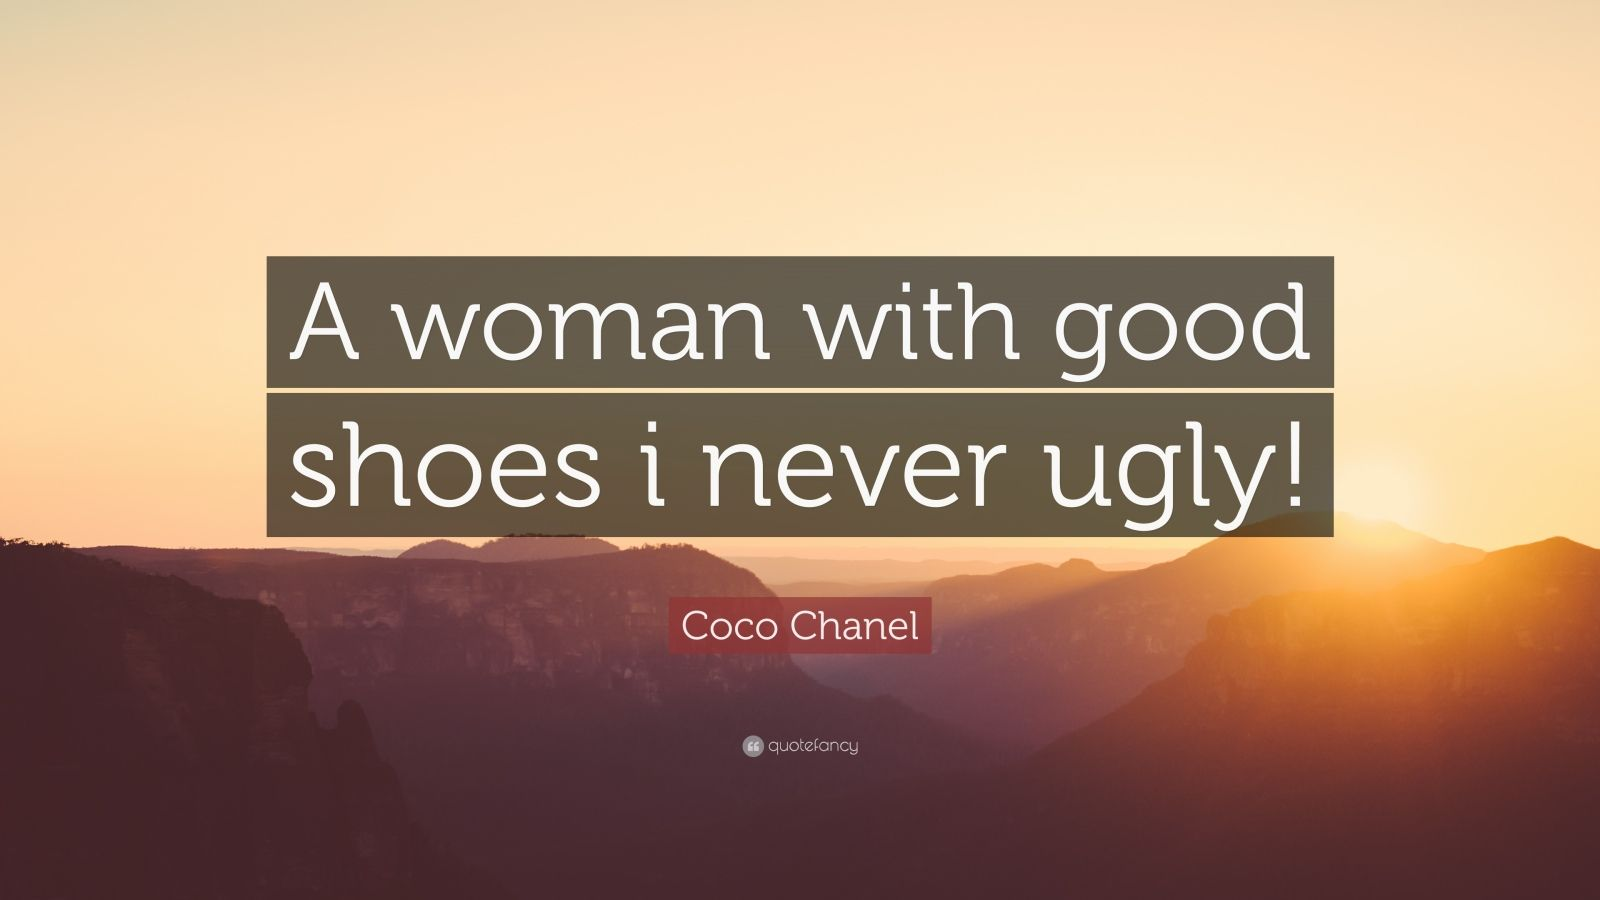 """Coco Chanel Quote: """"A woman with good shoes i never ugly!"""""""